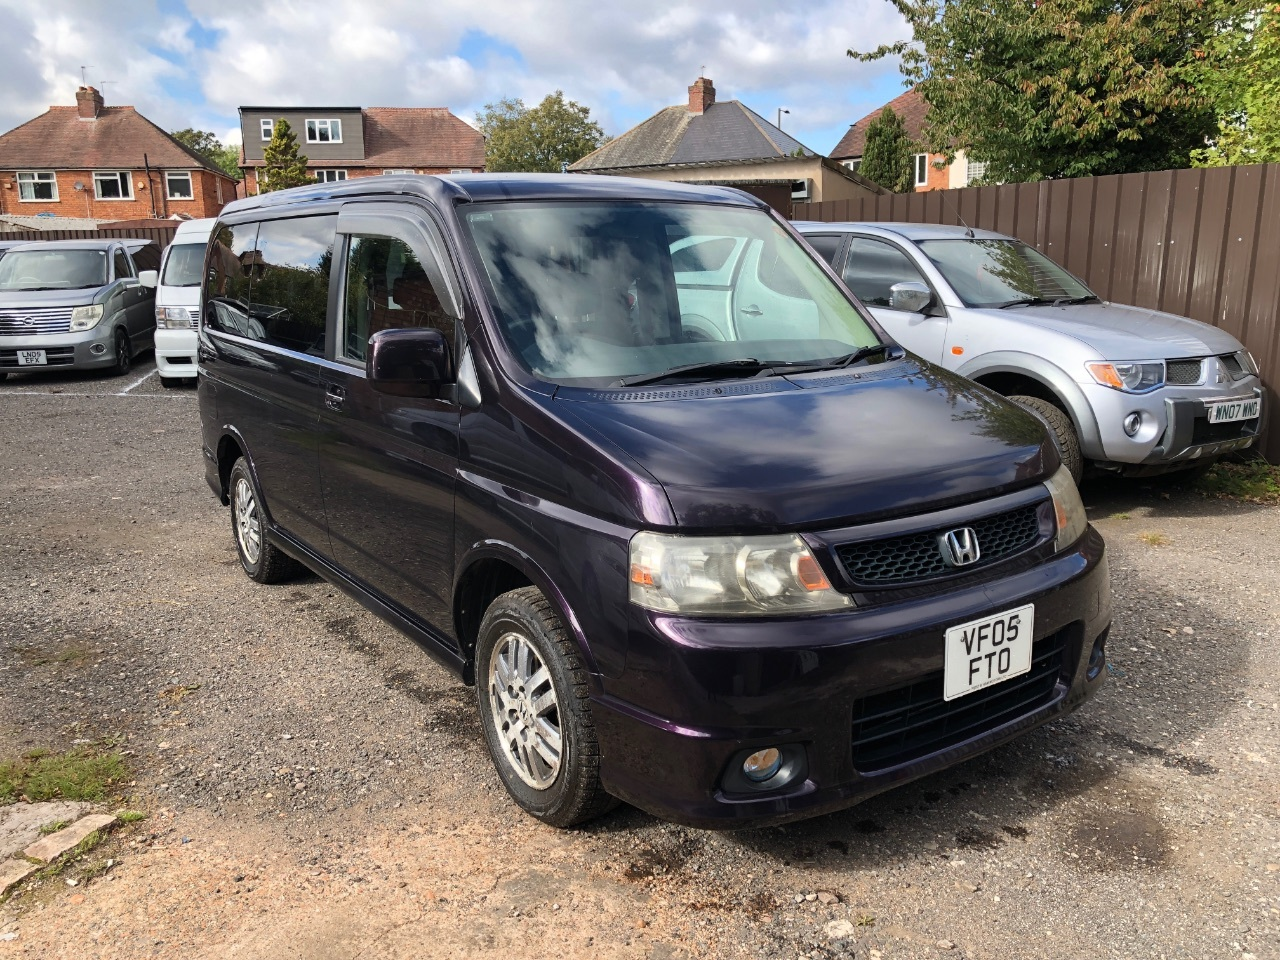 Honda Stepwagon Spada 2.0 i vtec mpv 8seater 4wd fresh import Four Wheel Drive Petrol Purple